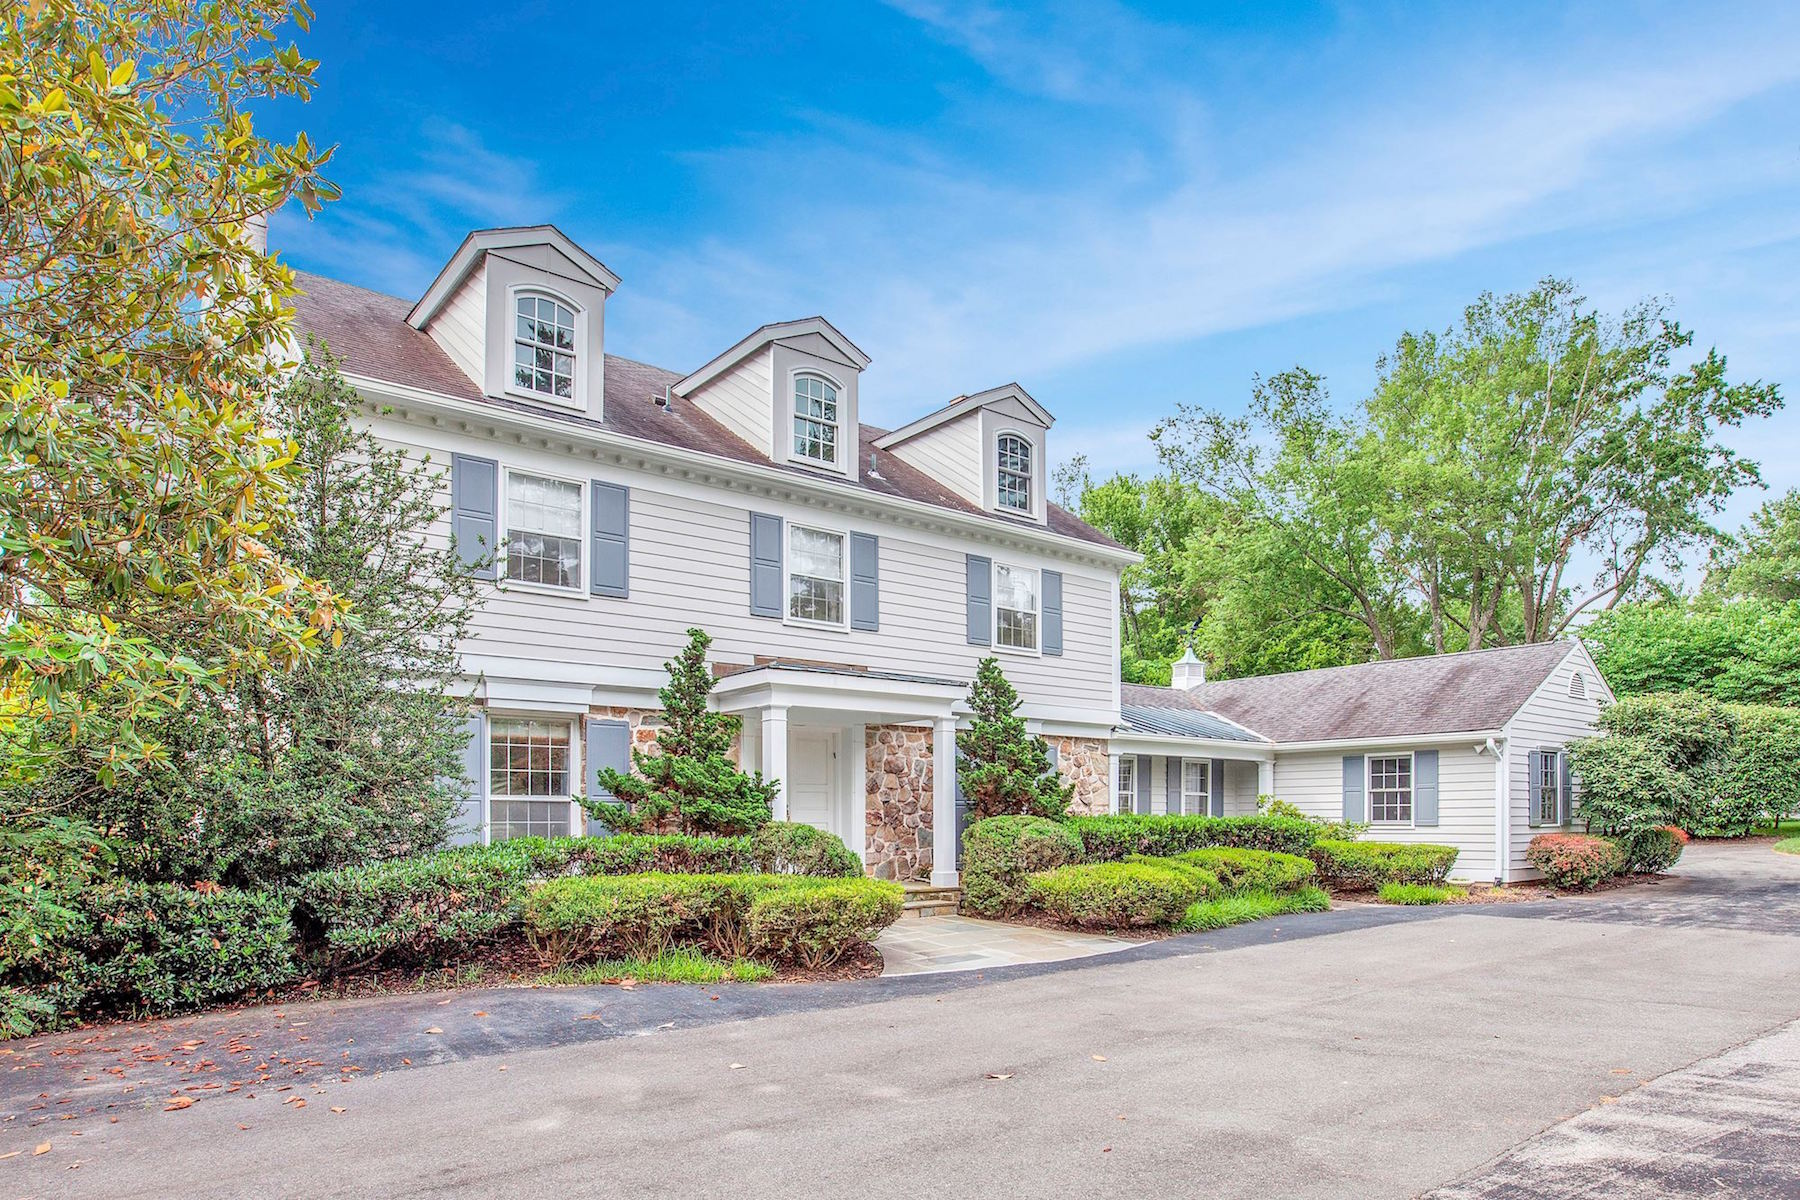 Single Family Home for Sale at 8810 Saunders Ln 8810 Saunders Ln Bethesda, Maryland 20817 United States